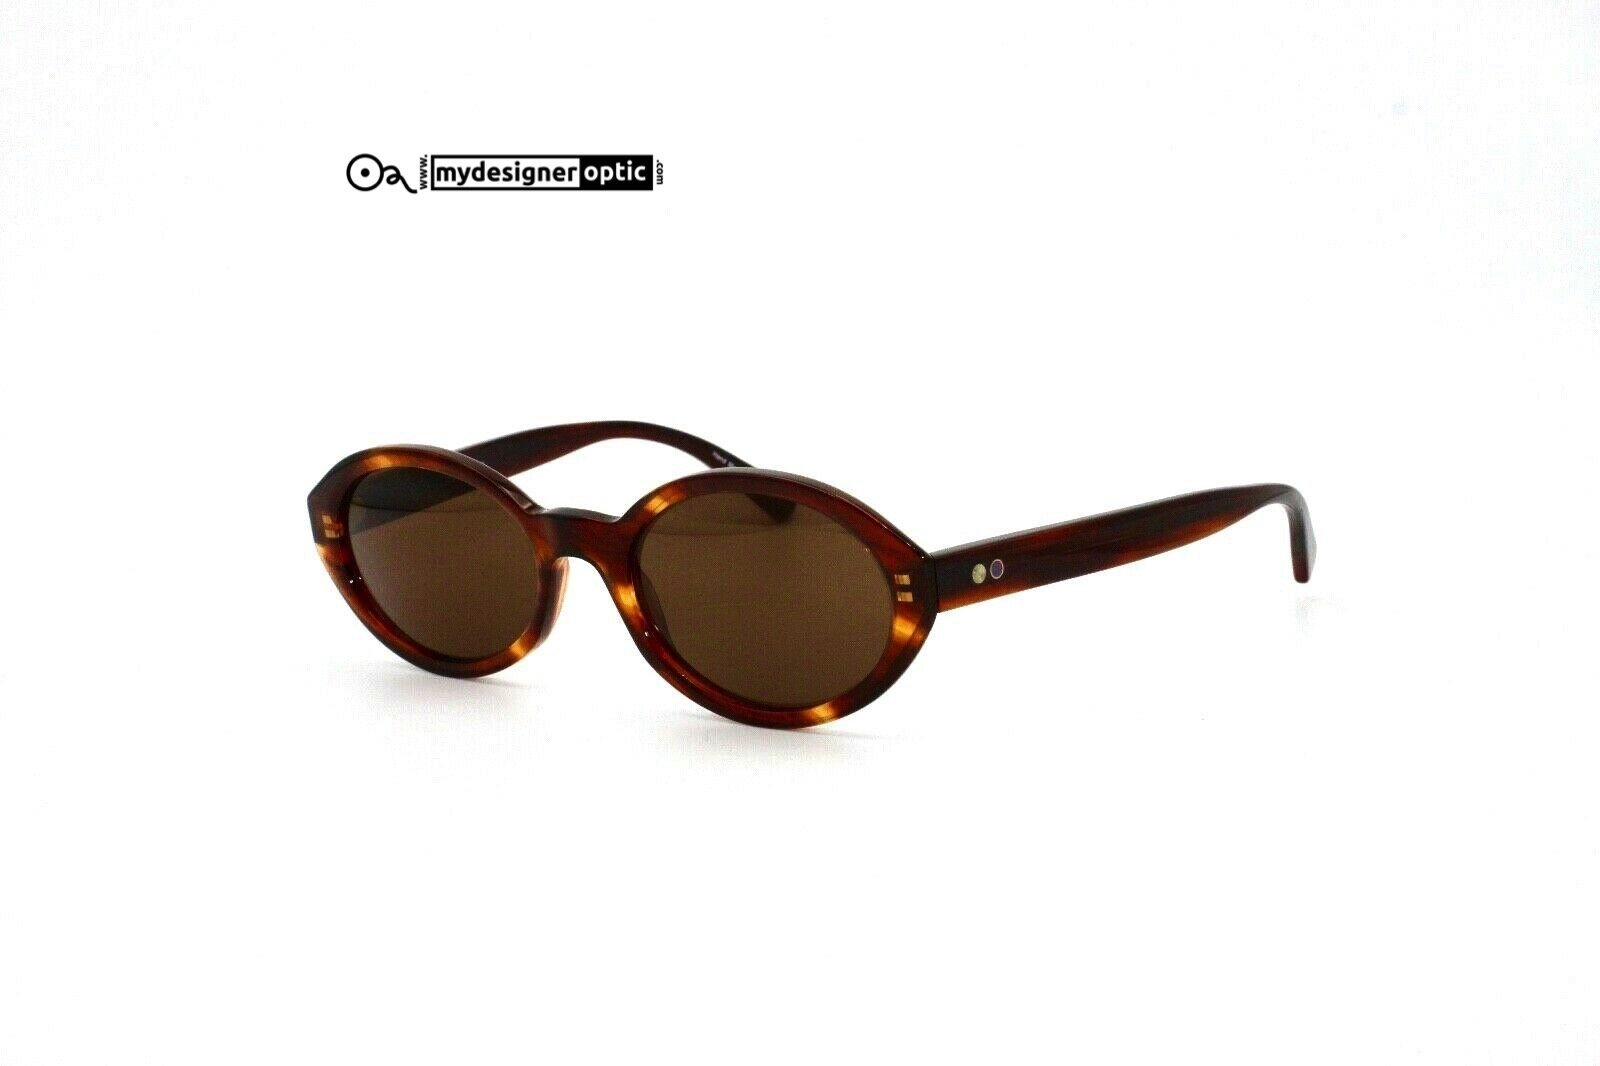 Paul Smith Sunglasses PM8123-S 1088/73 Cecile 52-19 140 3N Hand made in Italy - Mydesigneroptic